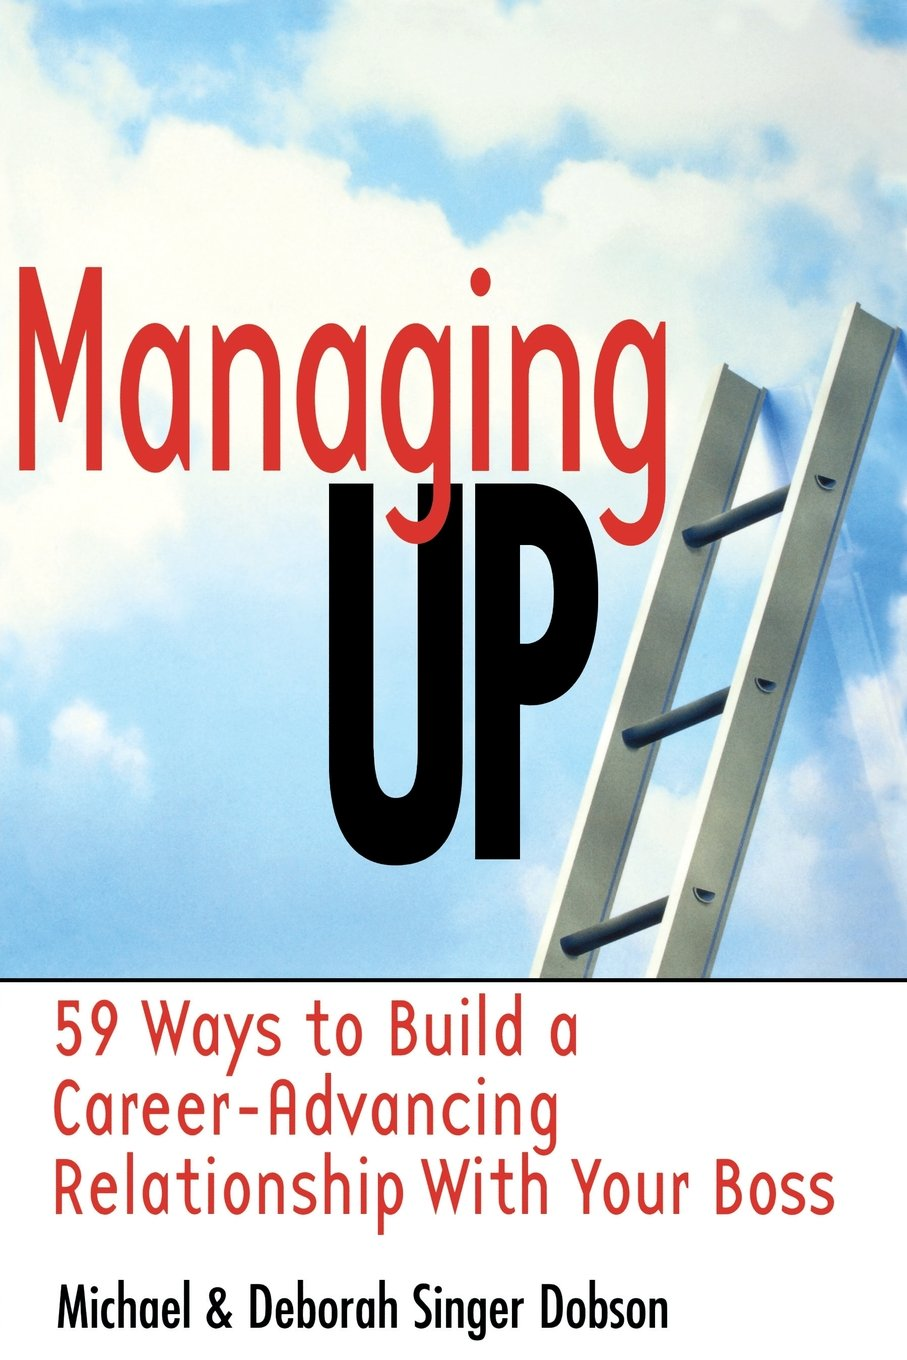 managing up ways to build a career advancing relationship managing up 59 ways to build a career advancing relationship your boss michael s dobson deborah singer dobson 9780814470428 com books